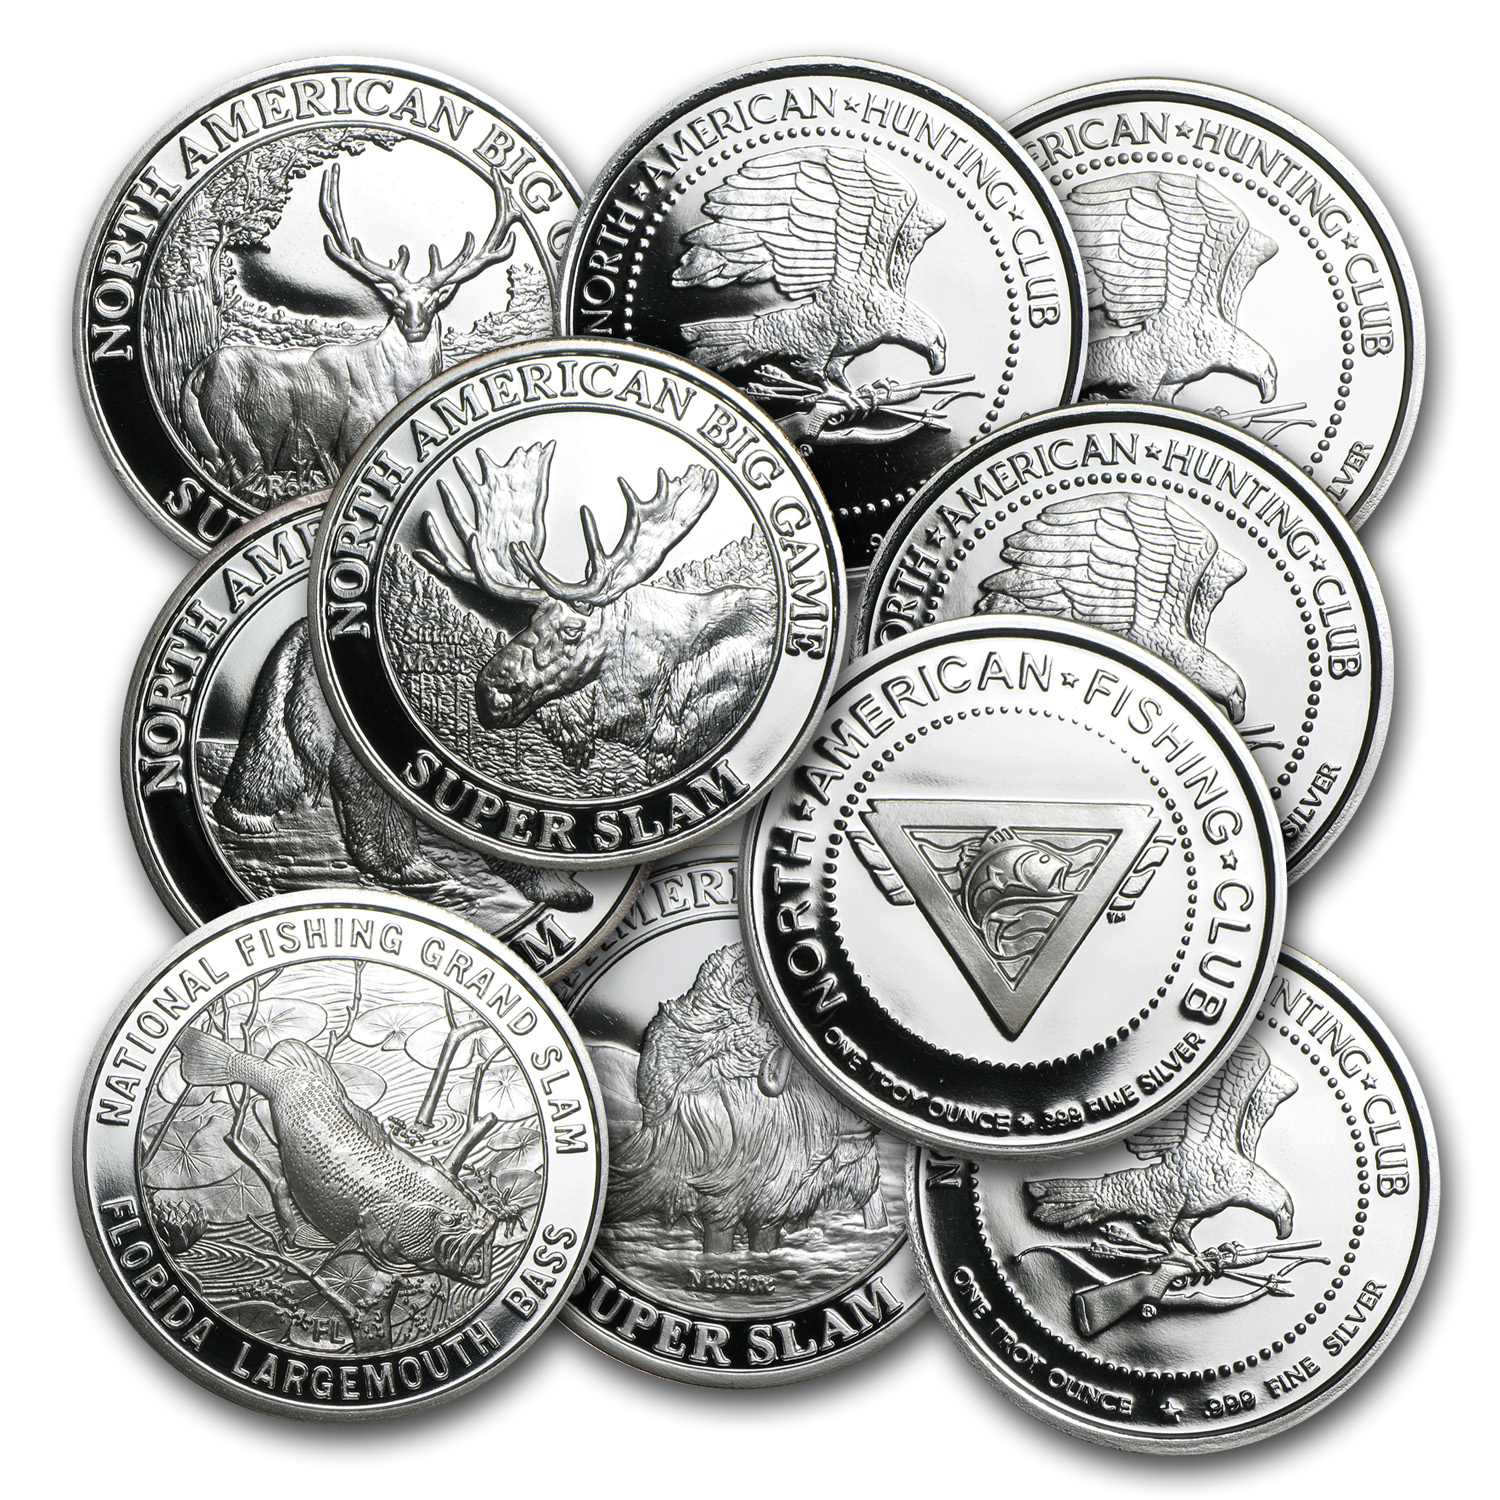 1 oz Silver Rounds - North American Hunting/Fishing Club